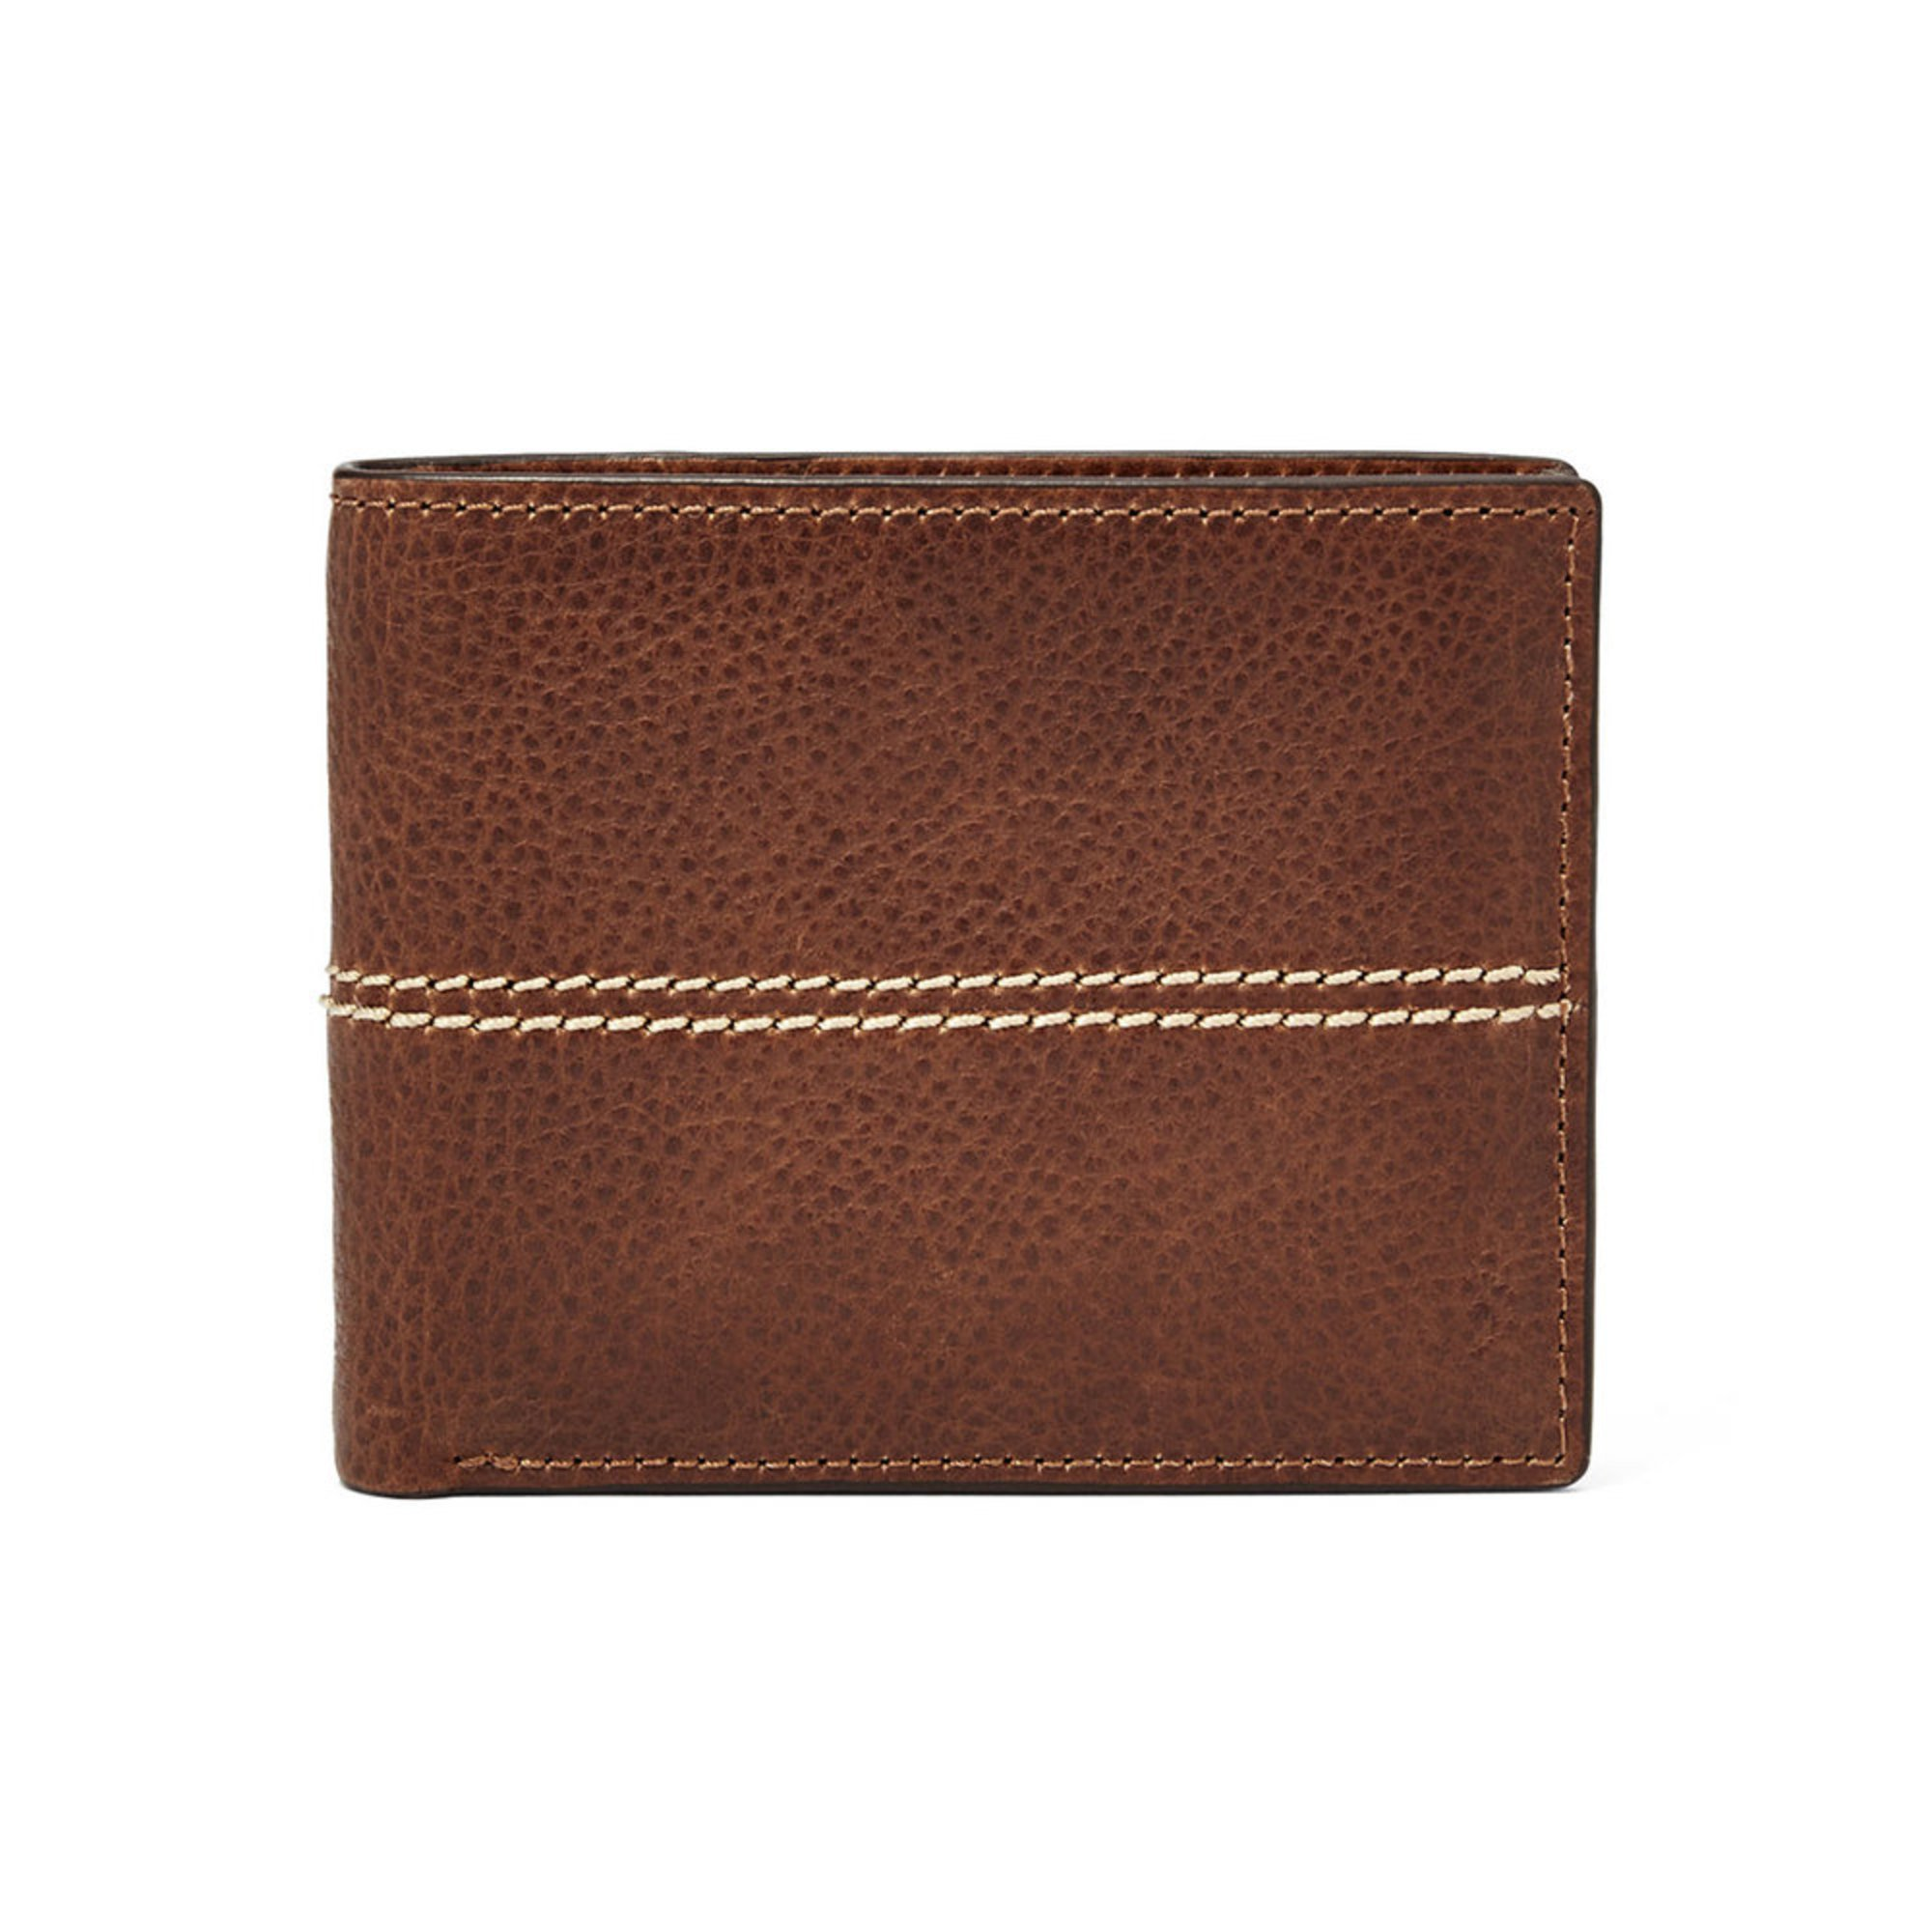 fossil wallet rfid turk passcas brown mens wallets